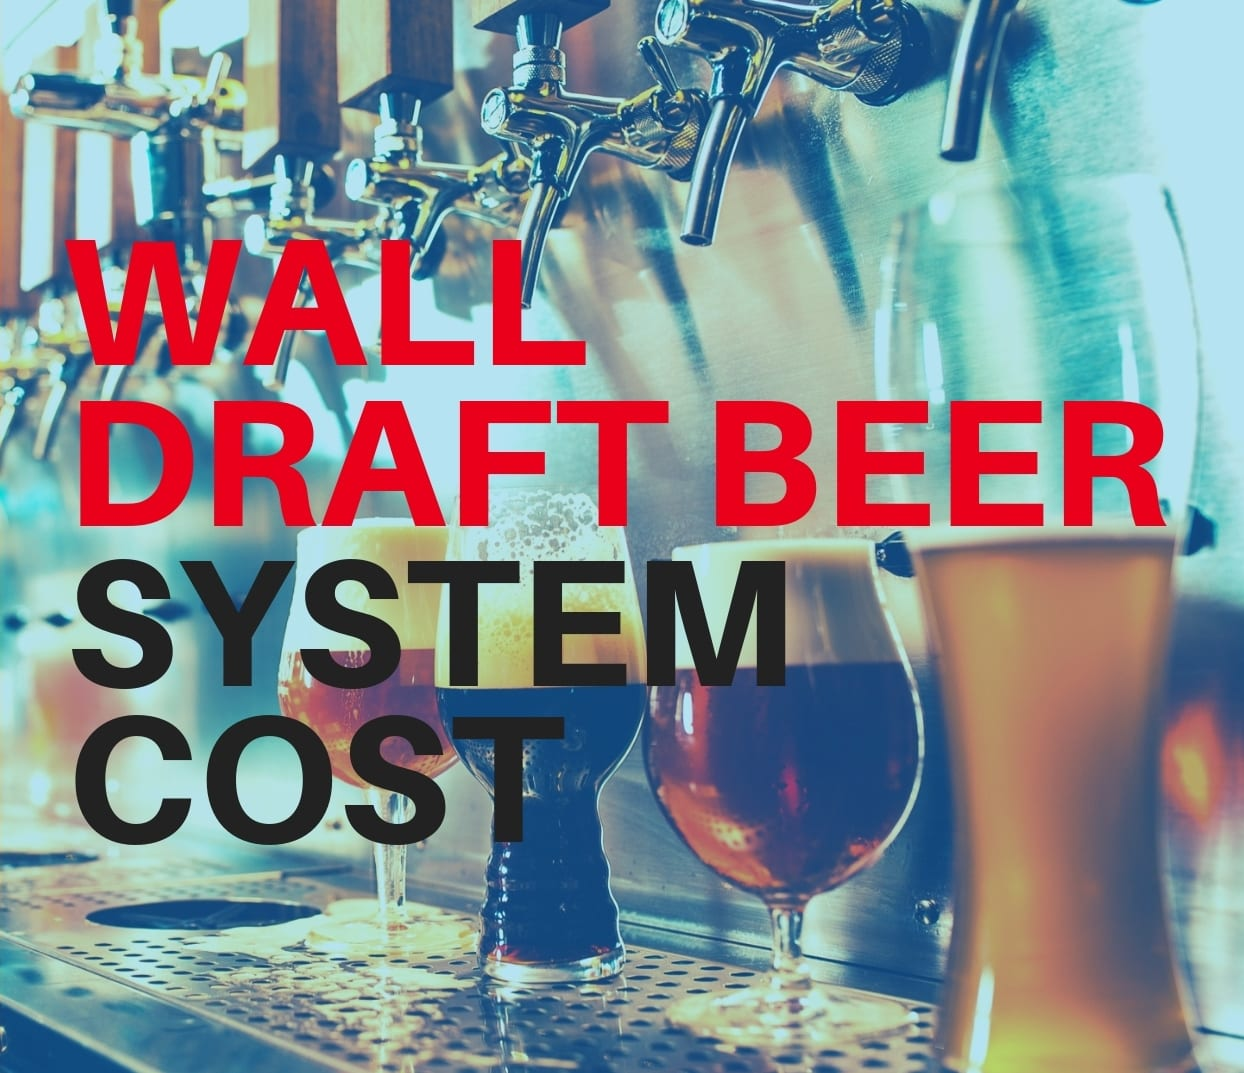 BEER-WALL-SYSTEM-COST-TN